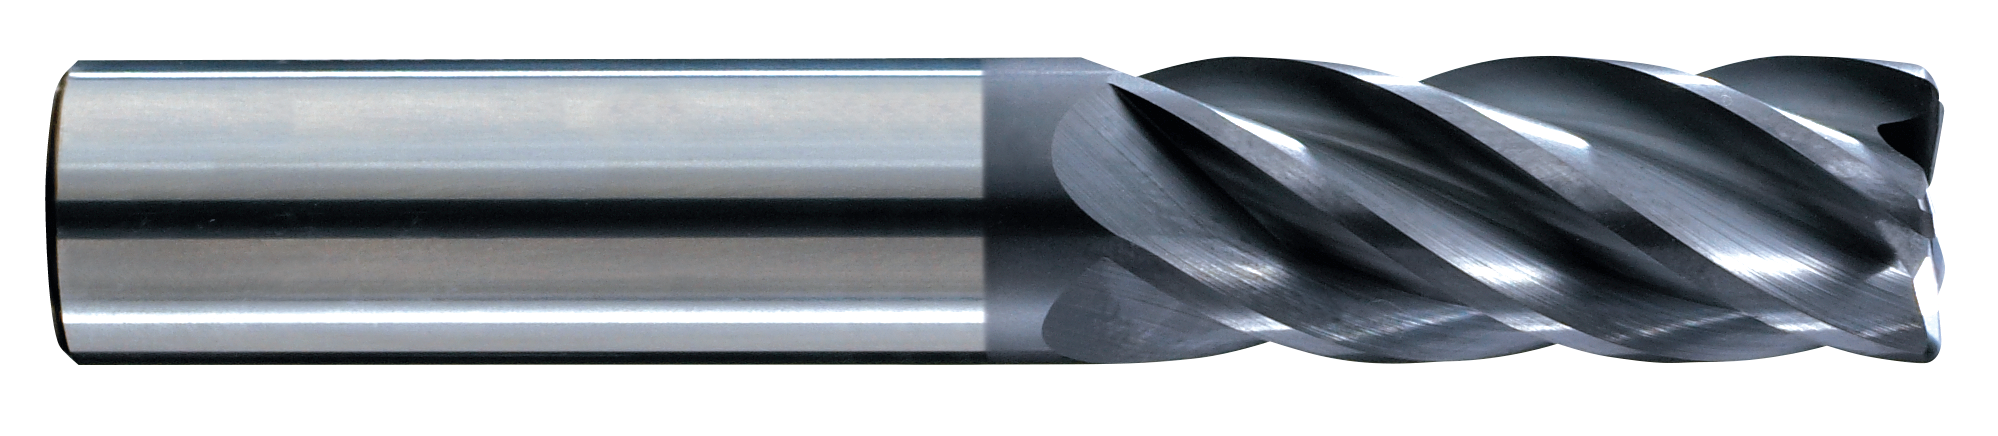 SSI-5 Five Flute Metric End Mill